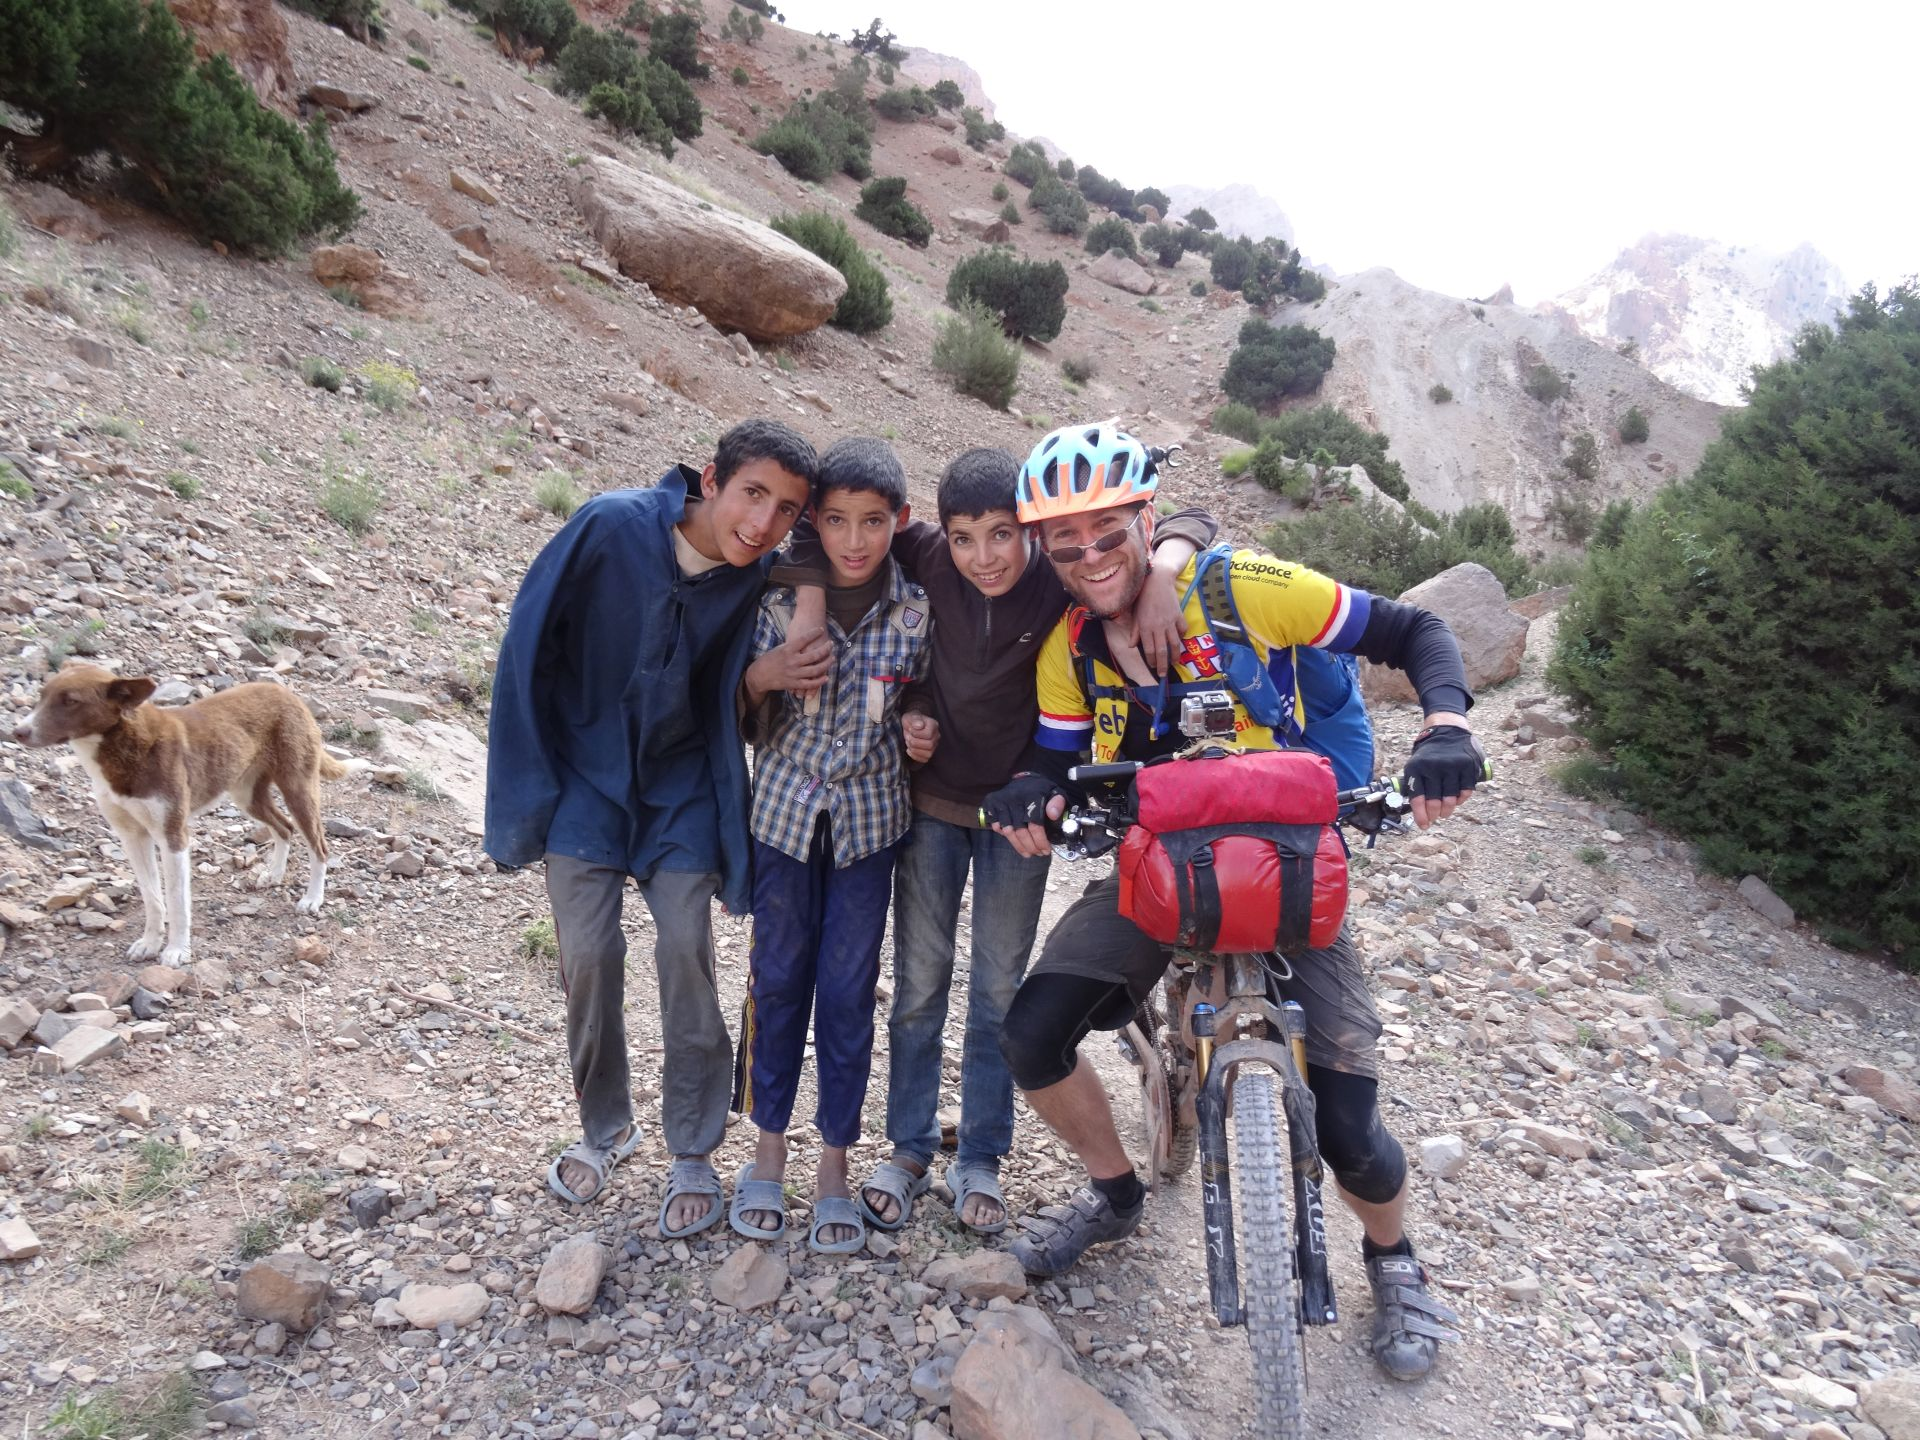 Day 5 - Our three little urchin friends, who show us a fantastic singletrack detour up into the hills, around the washed-away road. And their dog Max of course! Above Talat-n-Tazart. © Steve Woodward